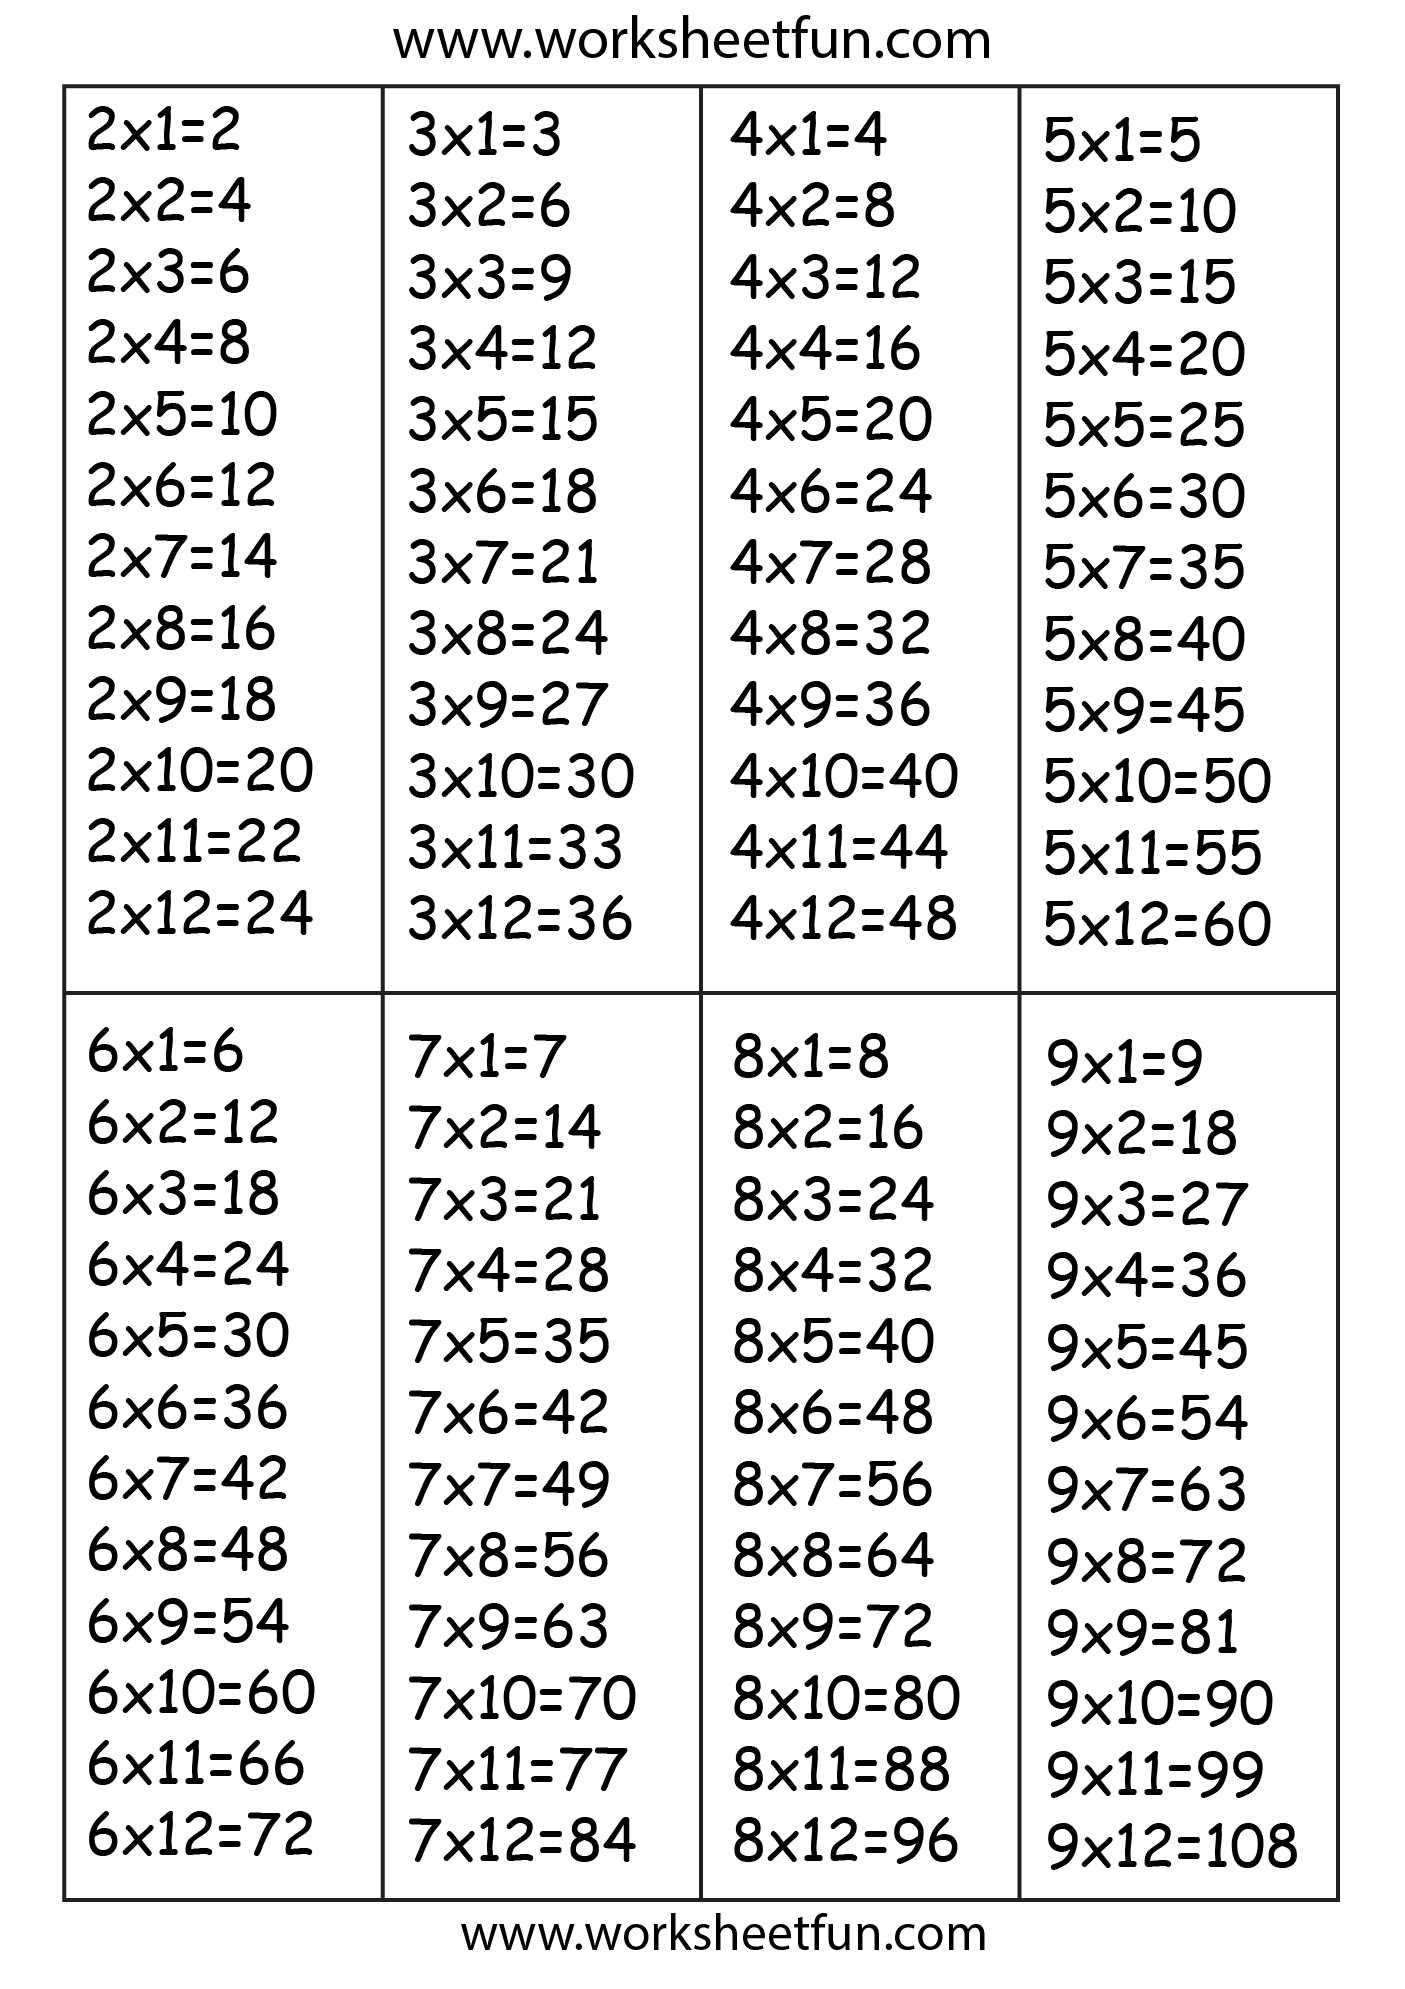 Square Root Worksheets 8th Grade Pdf Also Times Table Chart – 2 3 4 5 6 7 8 & 9 Free Printable